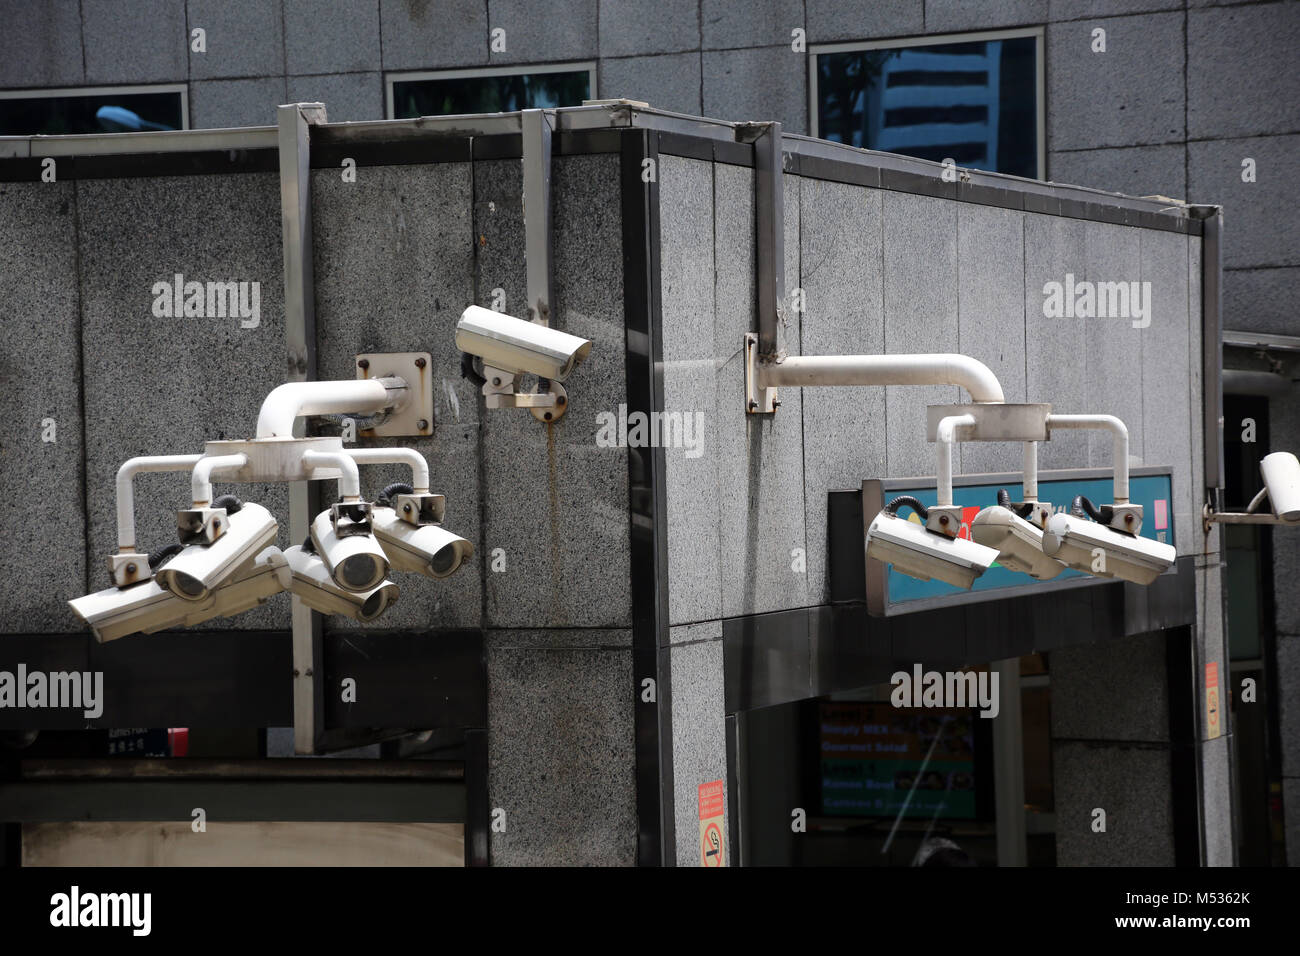 Symbol image Video surveillance in the public space - Stock Image